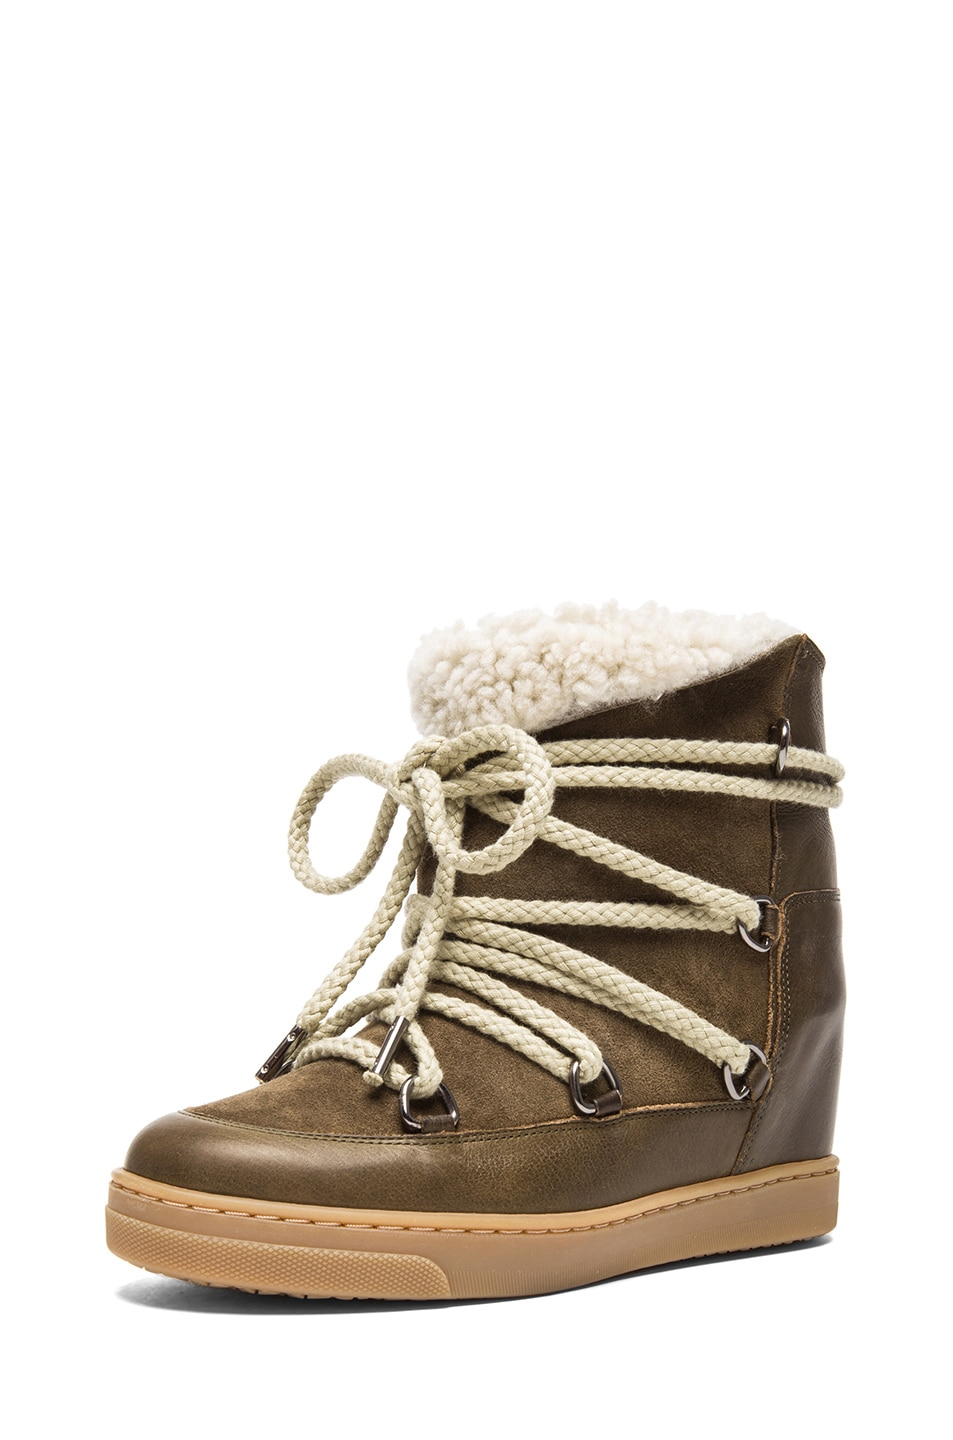 Image 2 of Isabel Marant Nowles Shearling & Calfskin Leather Boots in Khaki